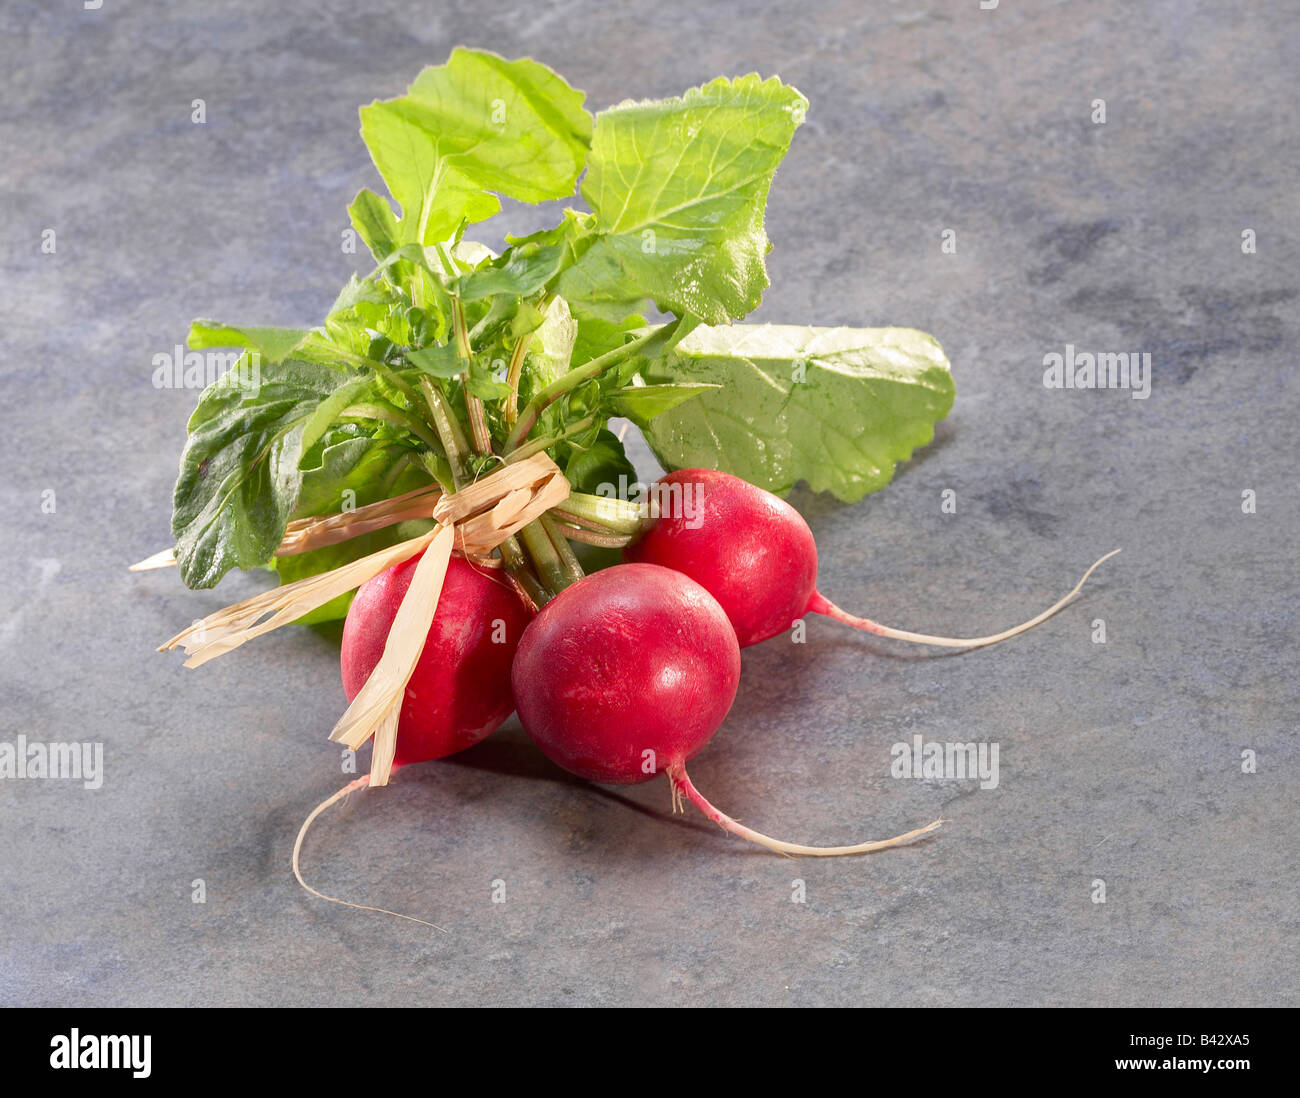 how to cut radishes for salad